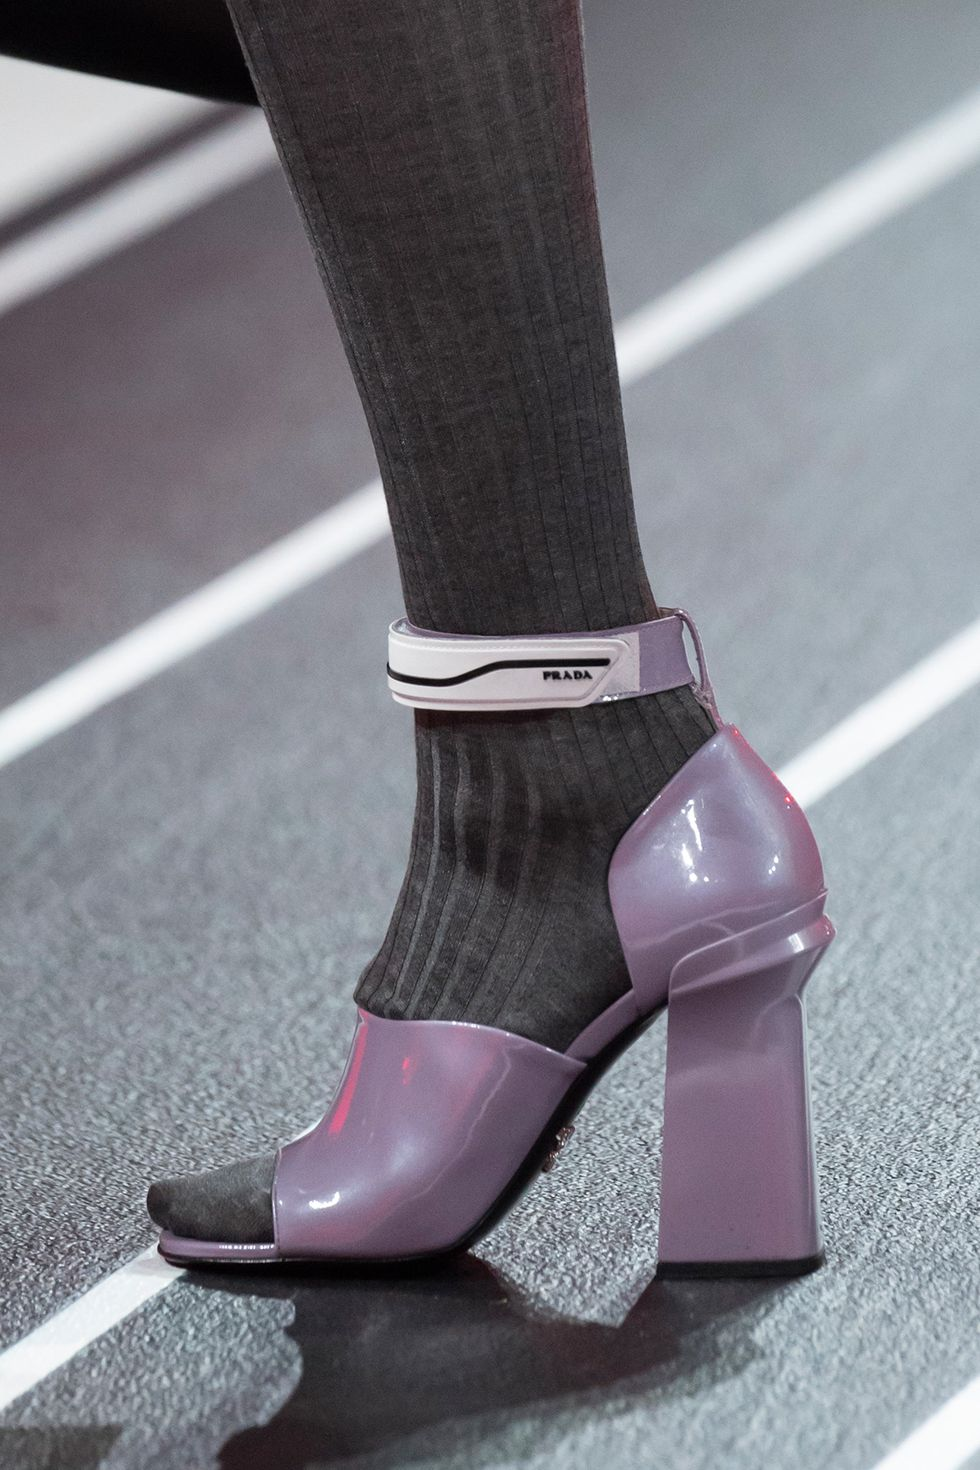 prada-fall-2020-runway-purple-heel-1582236634.jpg (980×1470)